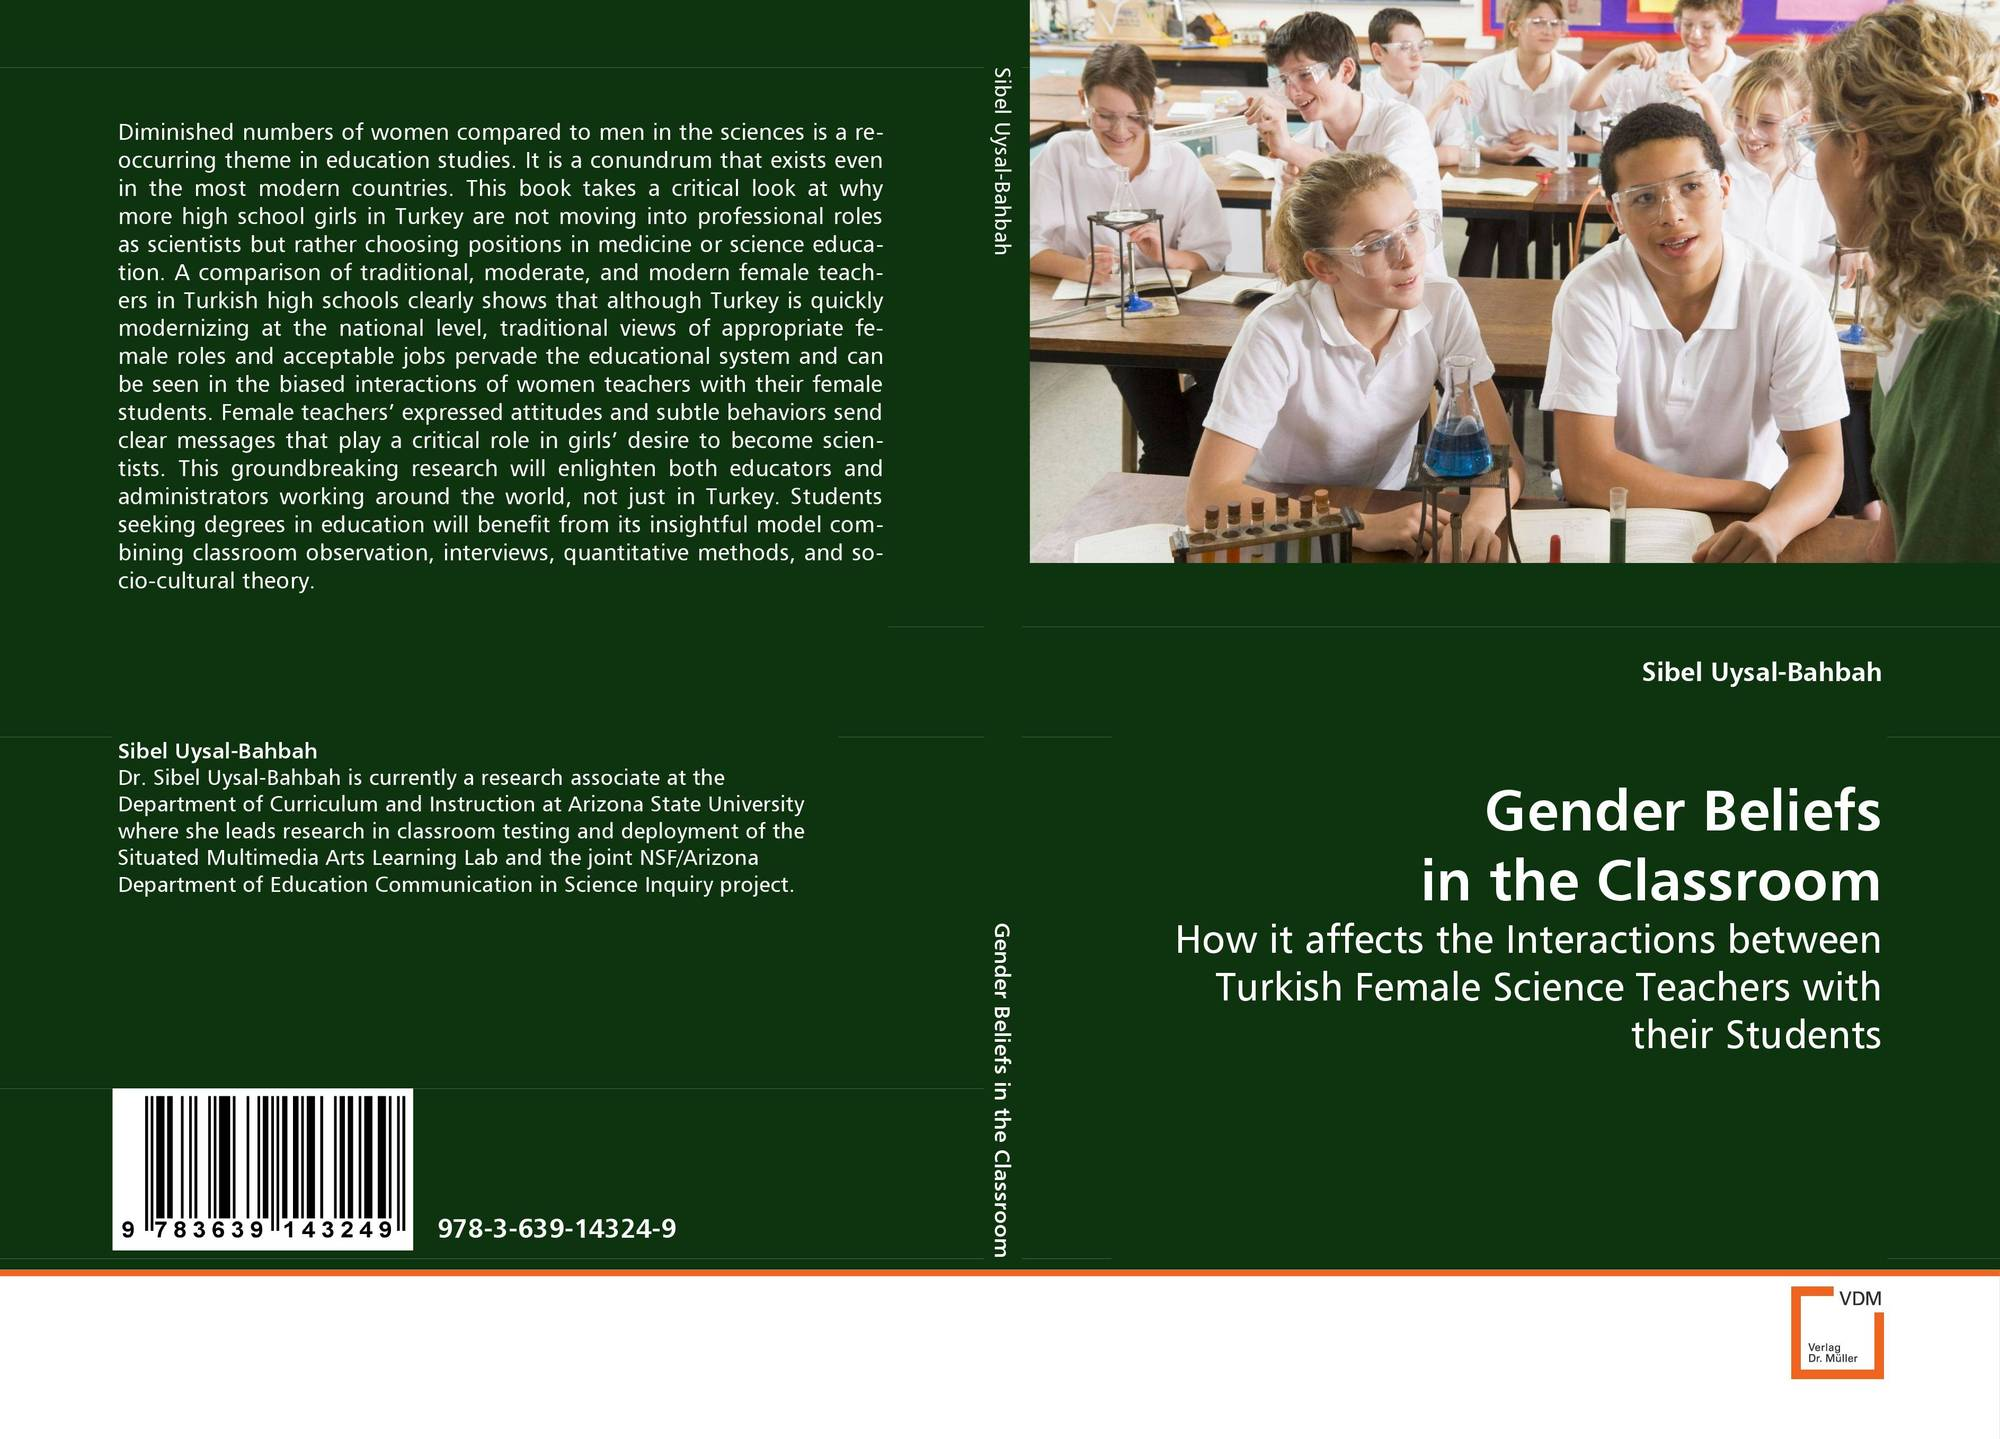 the effects of gender on classroom interactions between students and teachers